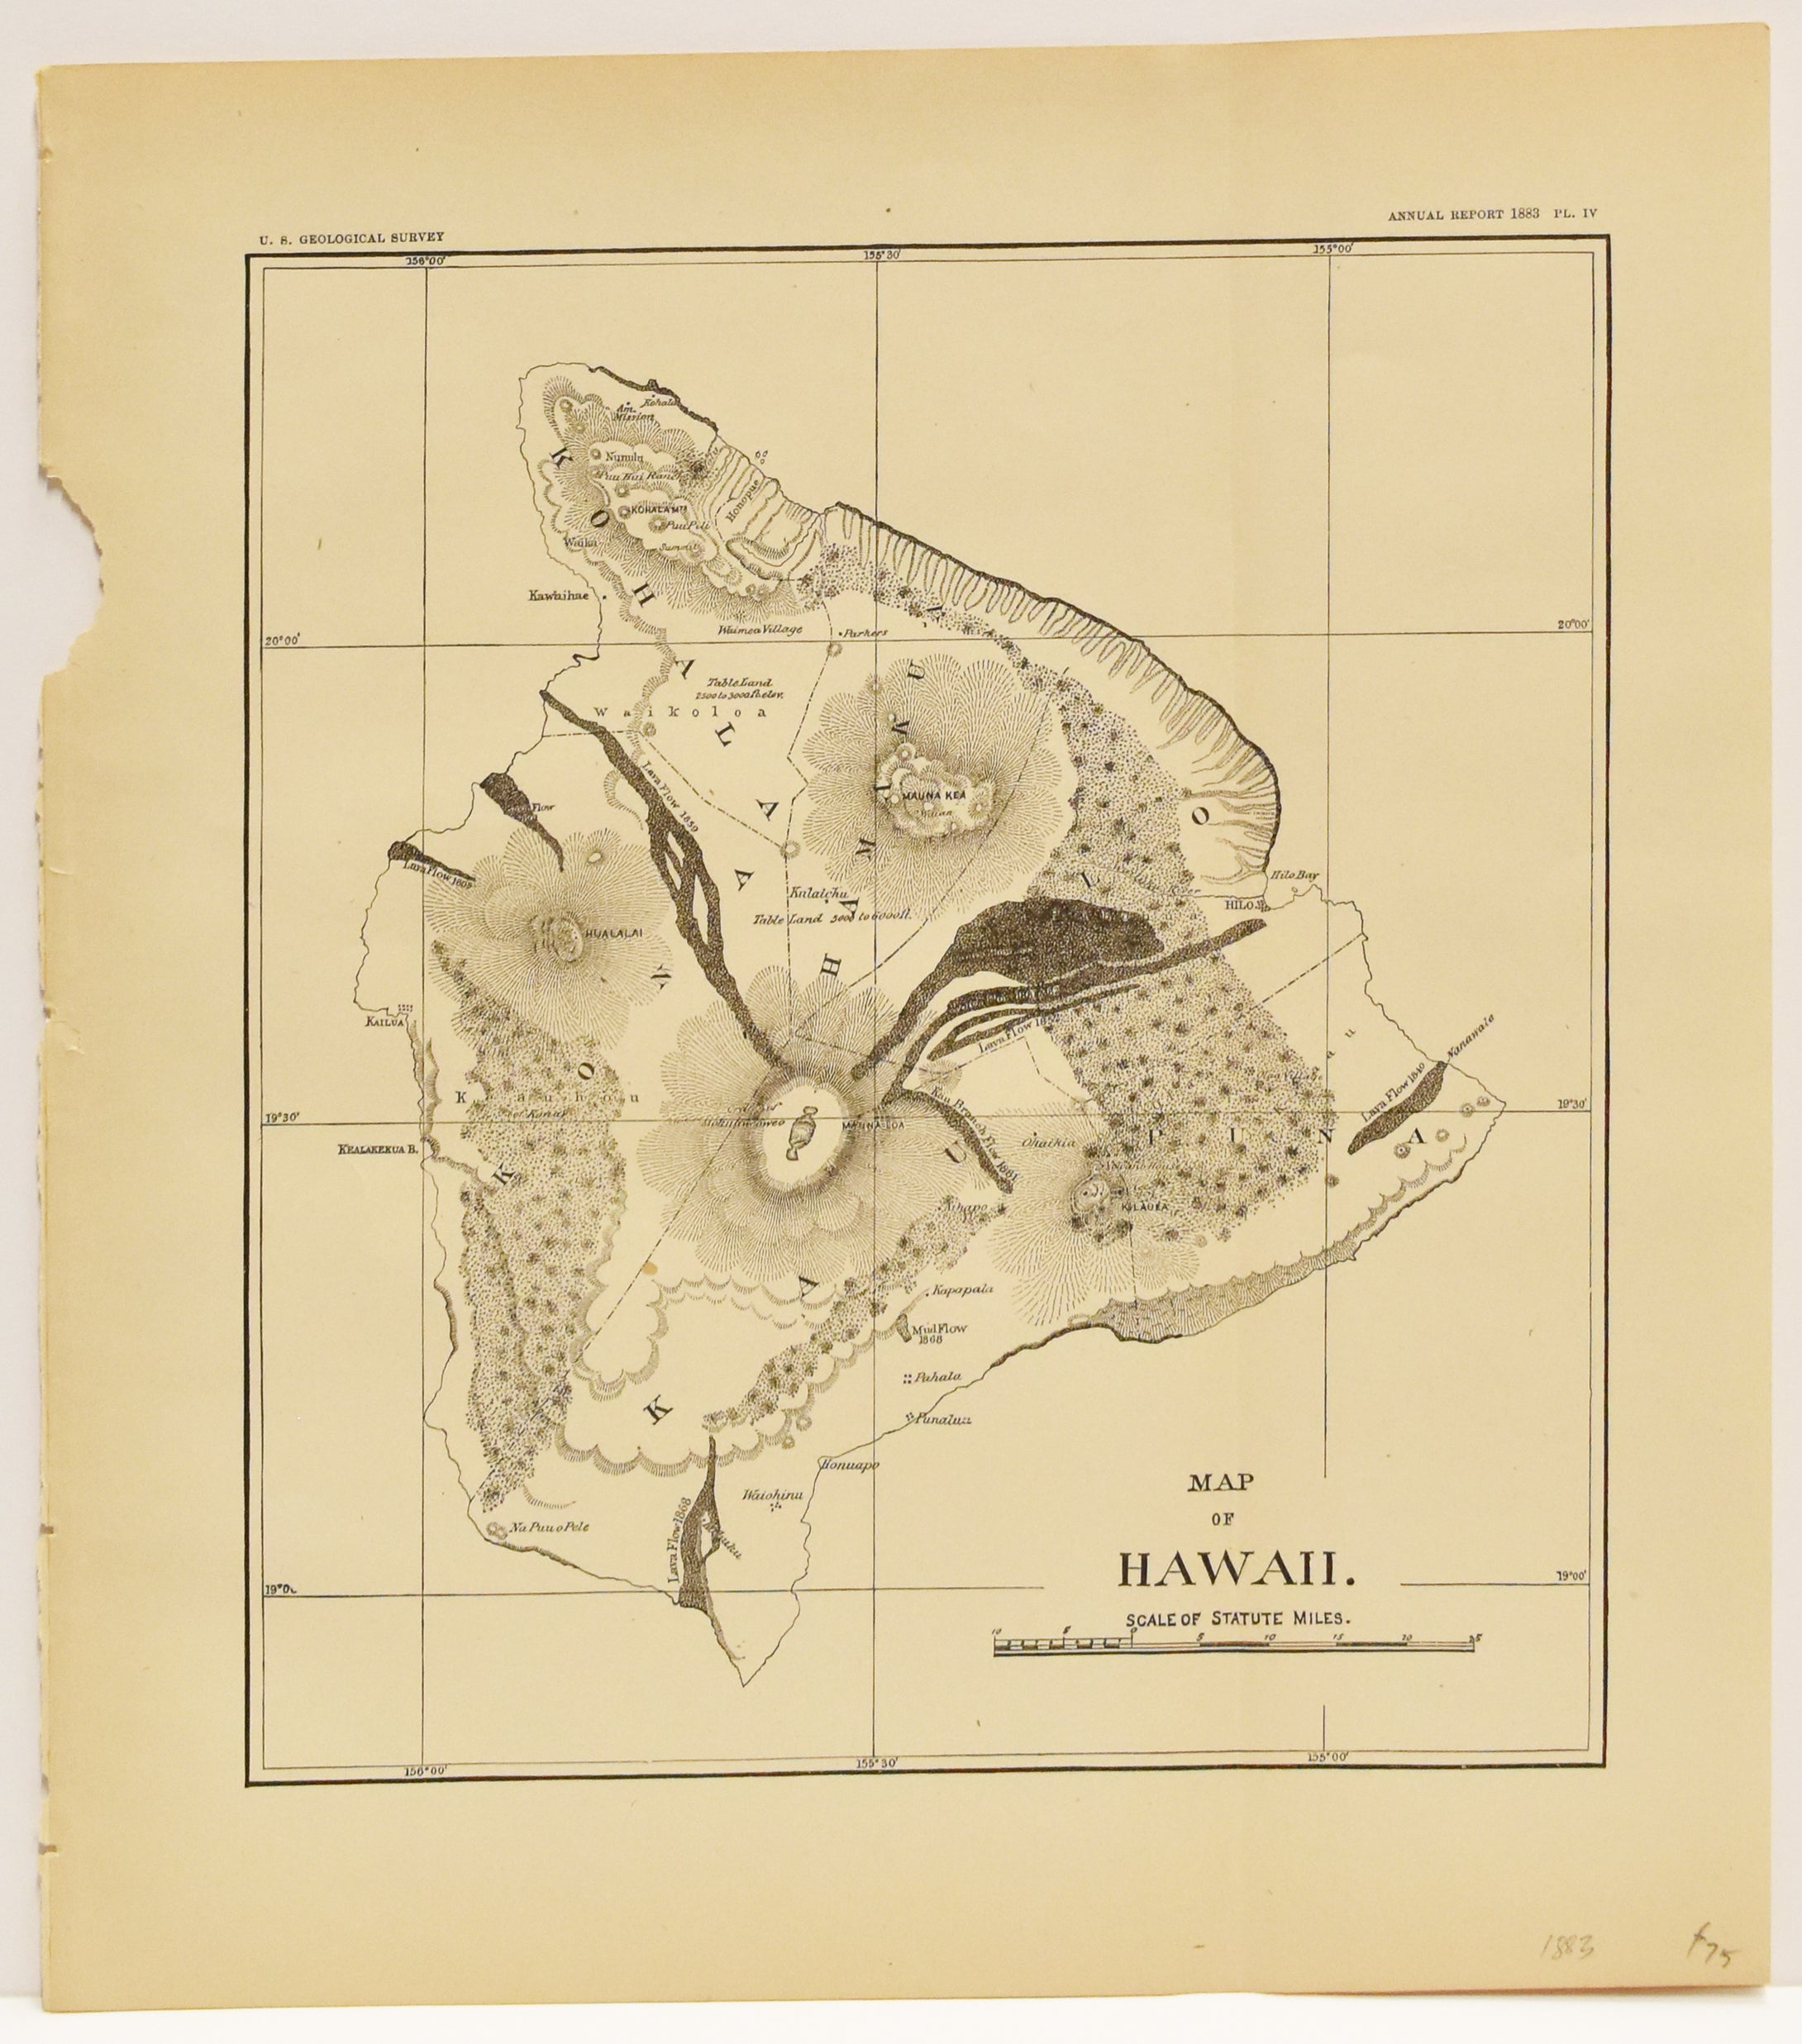 Map of Hawaii: U.S. Geological Survey 1883